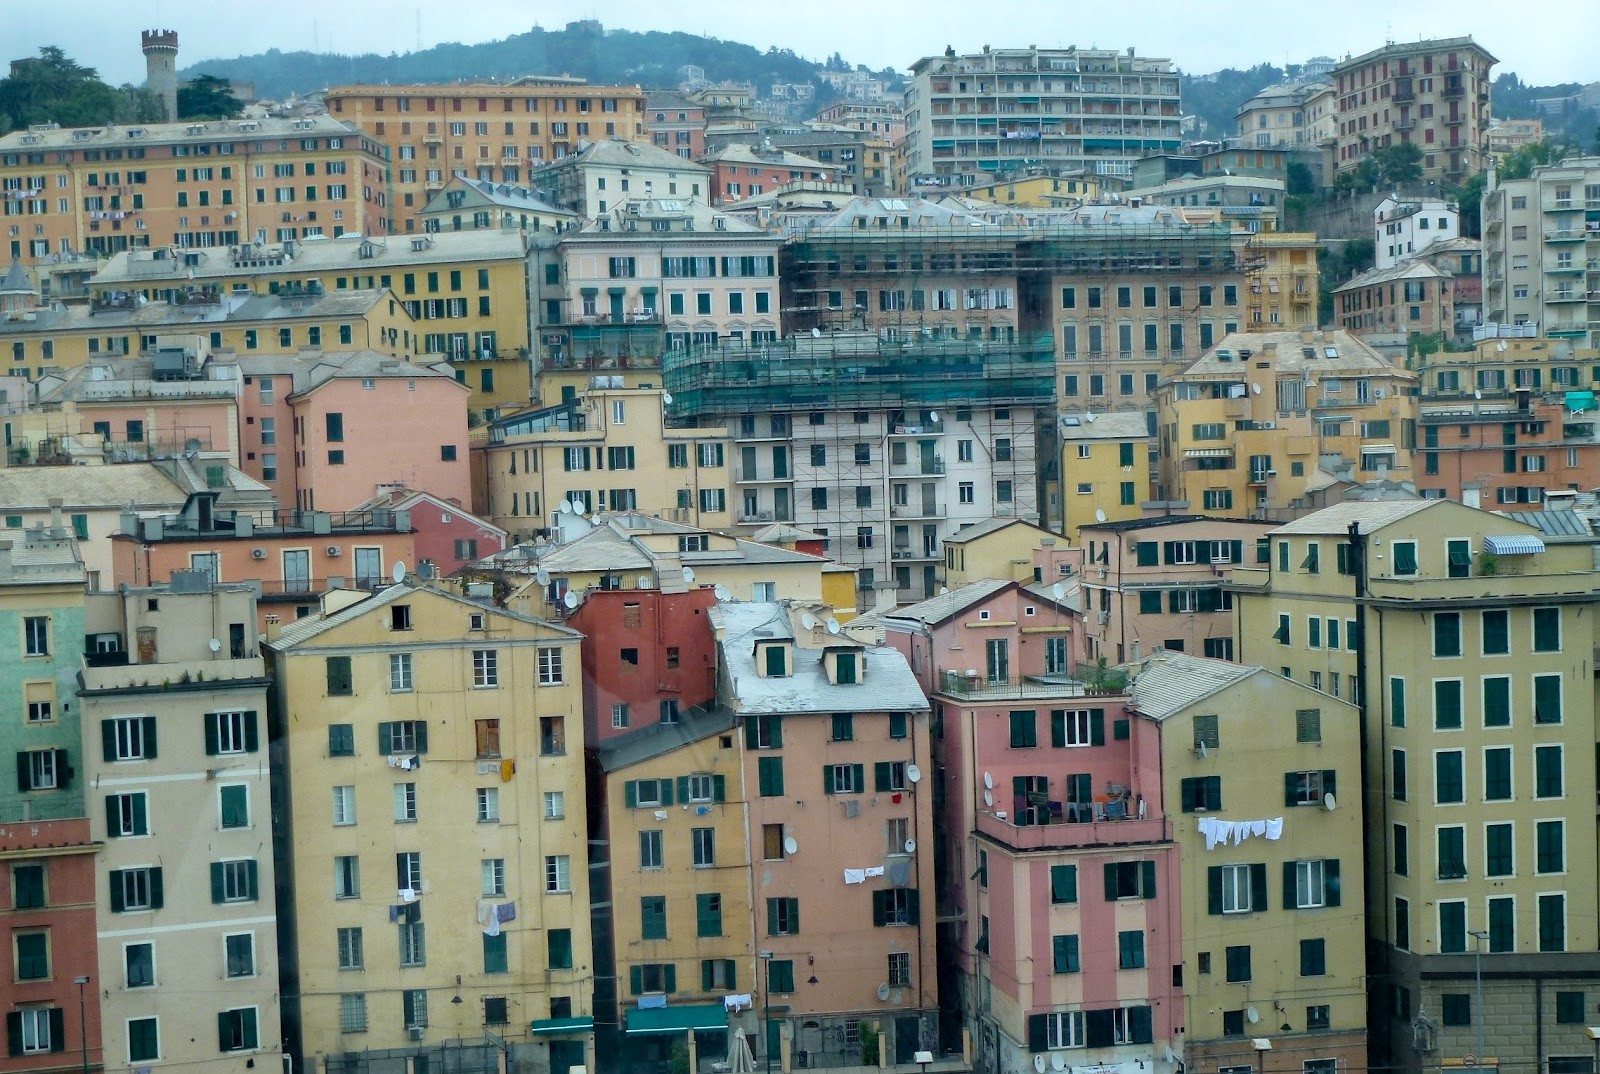 genoa chat Language exchange in genoa via live conversation or use email, text chat or voice chat follow free activities and lesson plans for fun, interesting, effective practice use guidelines provided by an expert in language exchange to help each other learn.